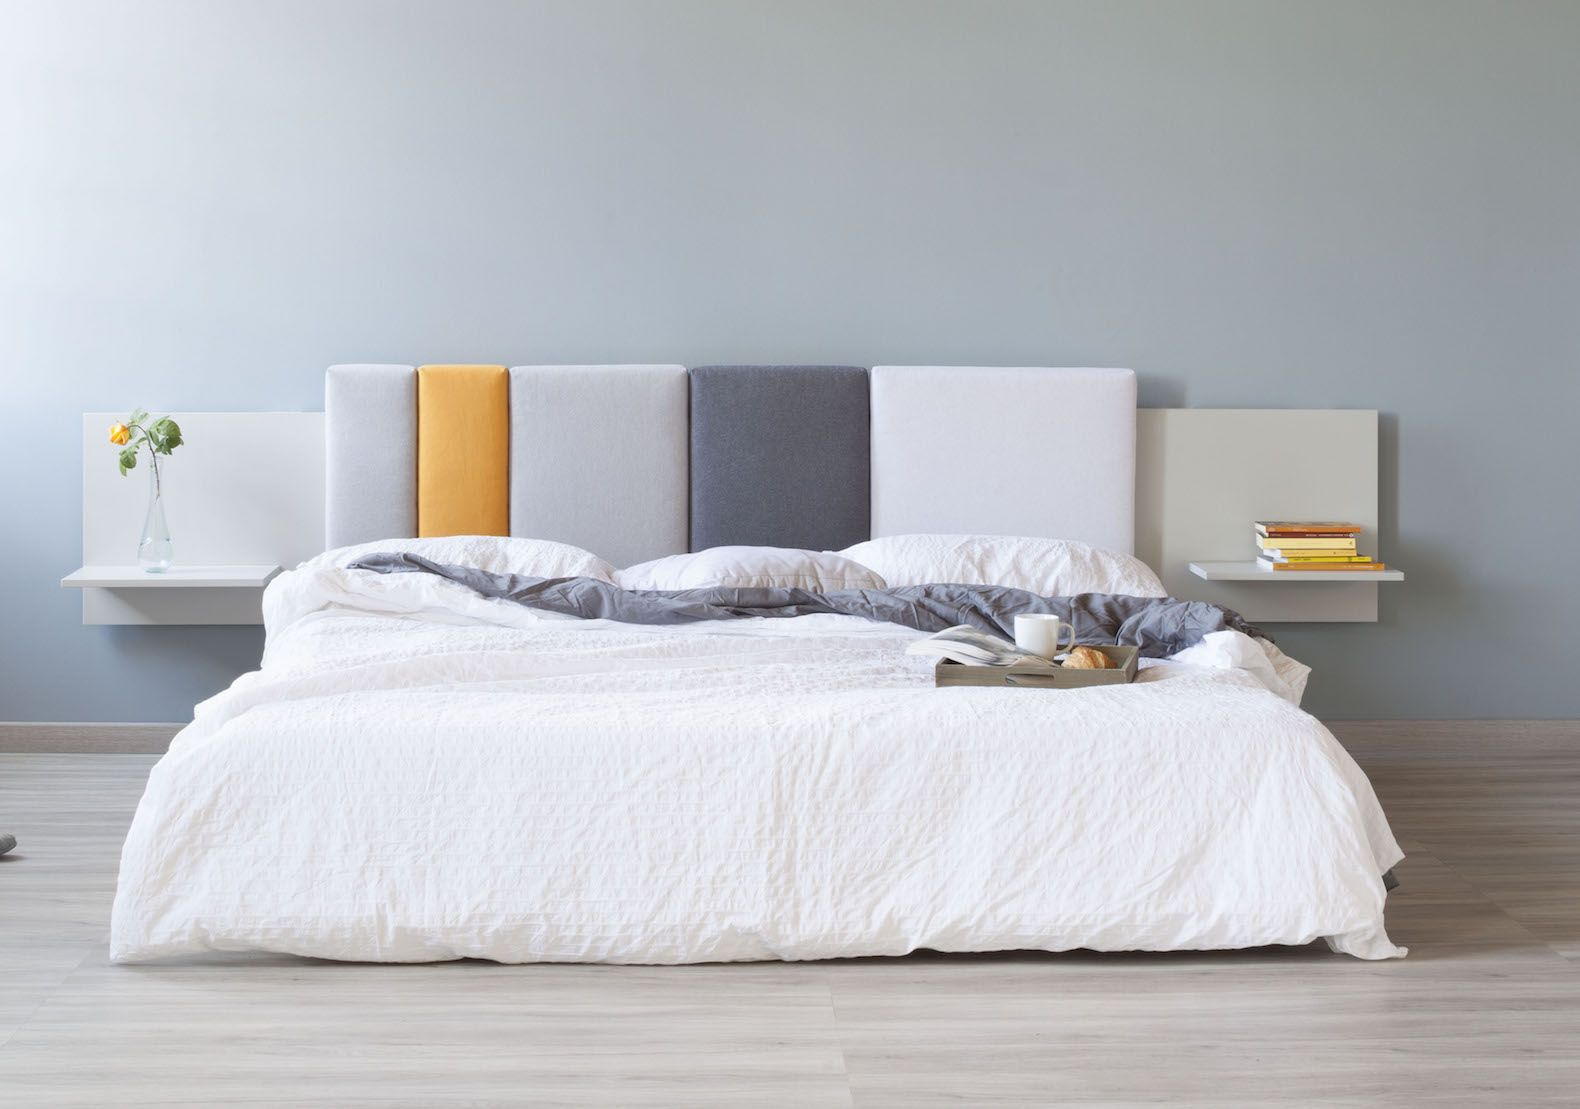 Comoditi is a modular bed headboard made with ecofriendly